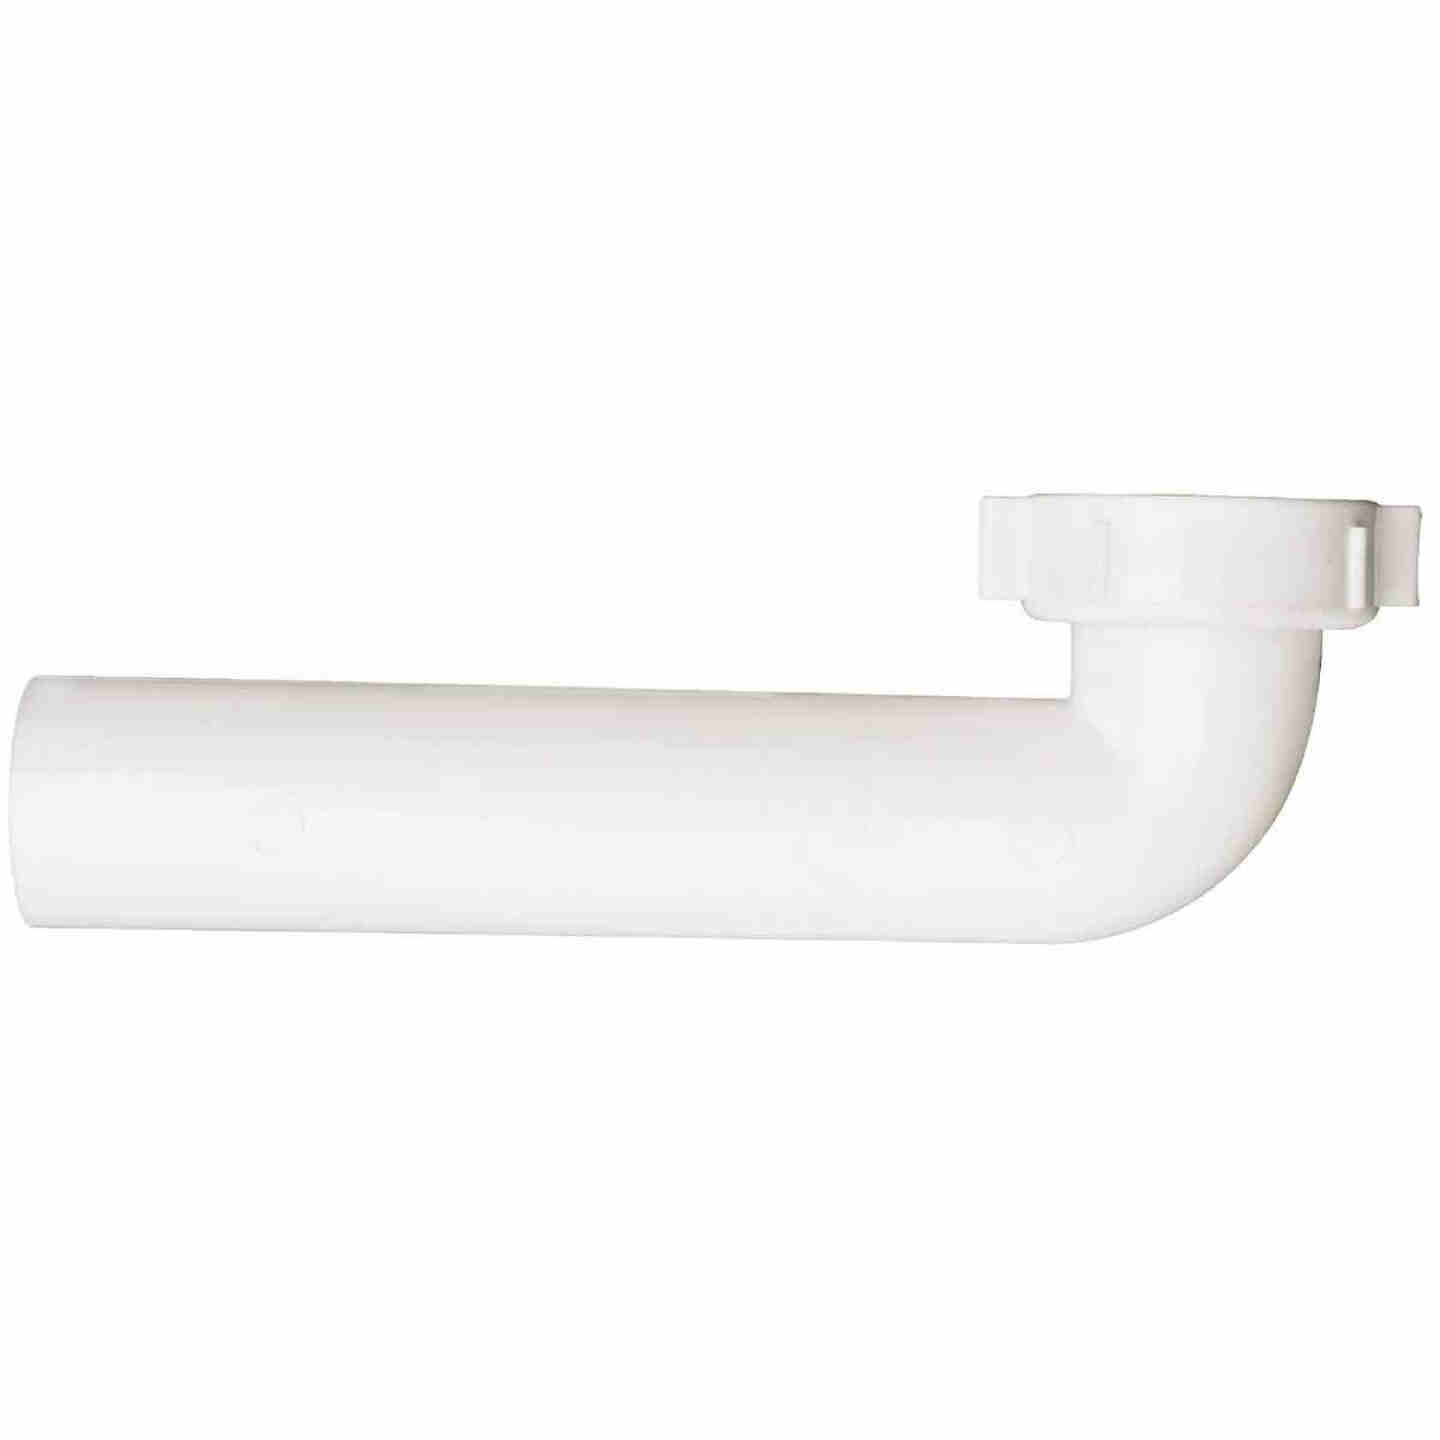 Do it 1-1/2 In. x 7 In. White Plastic Waste Arm Image 1